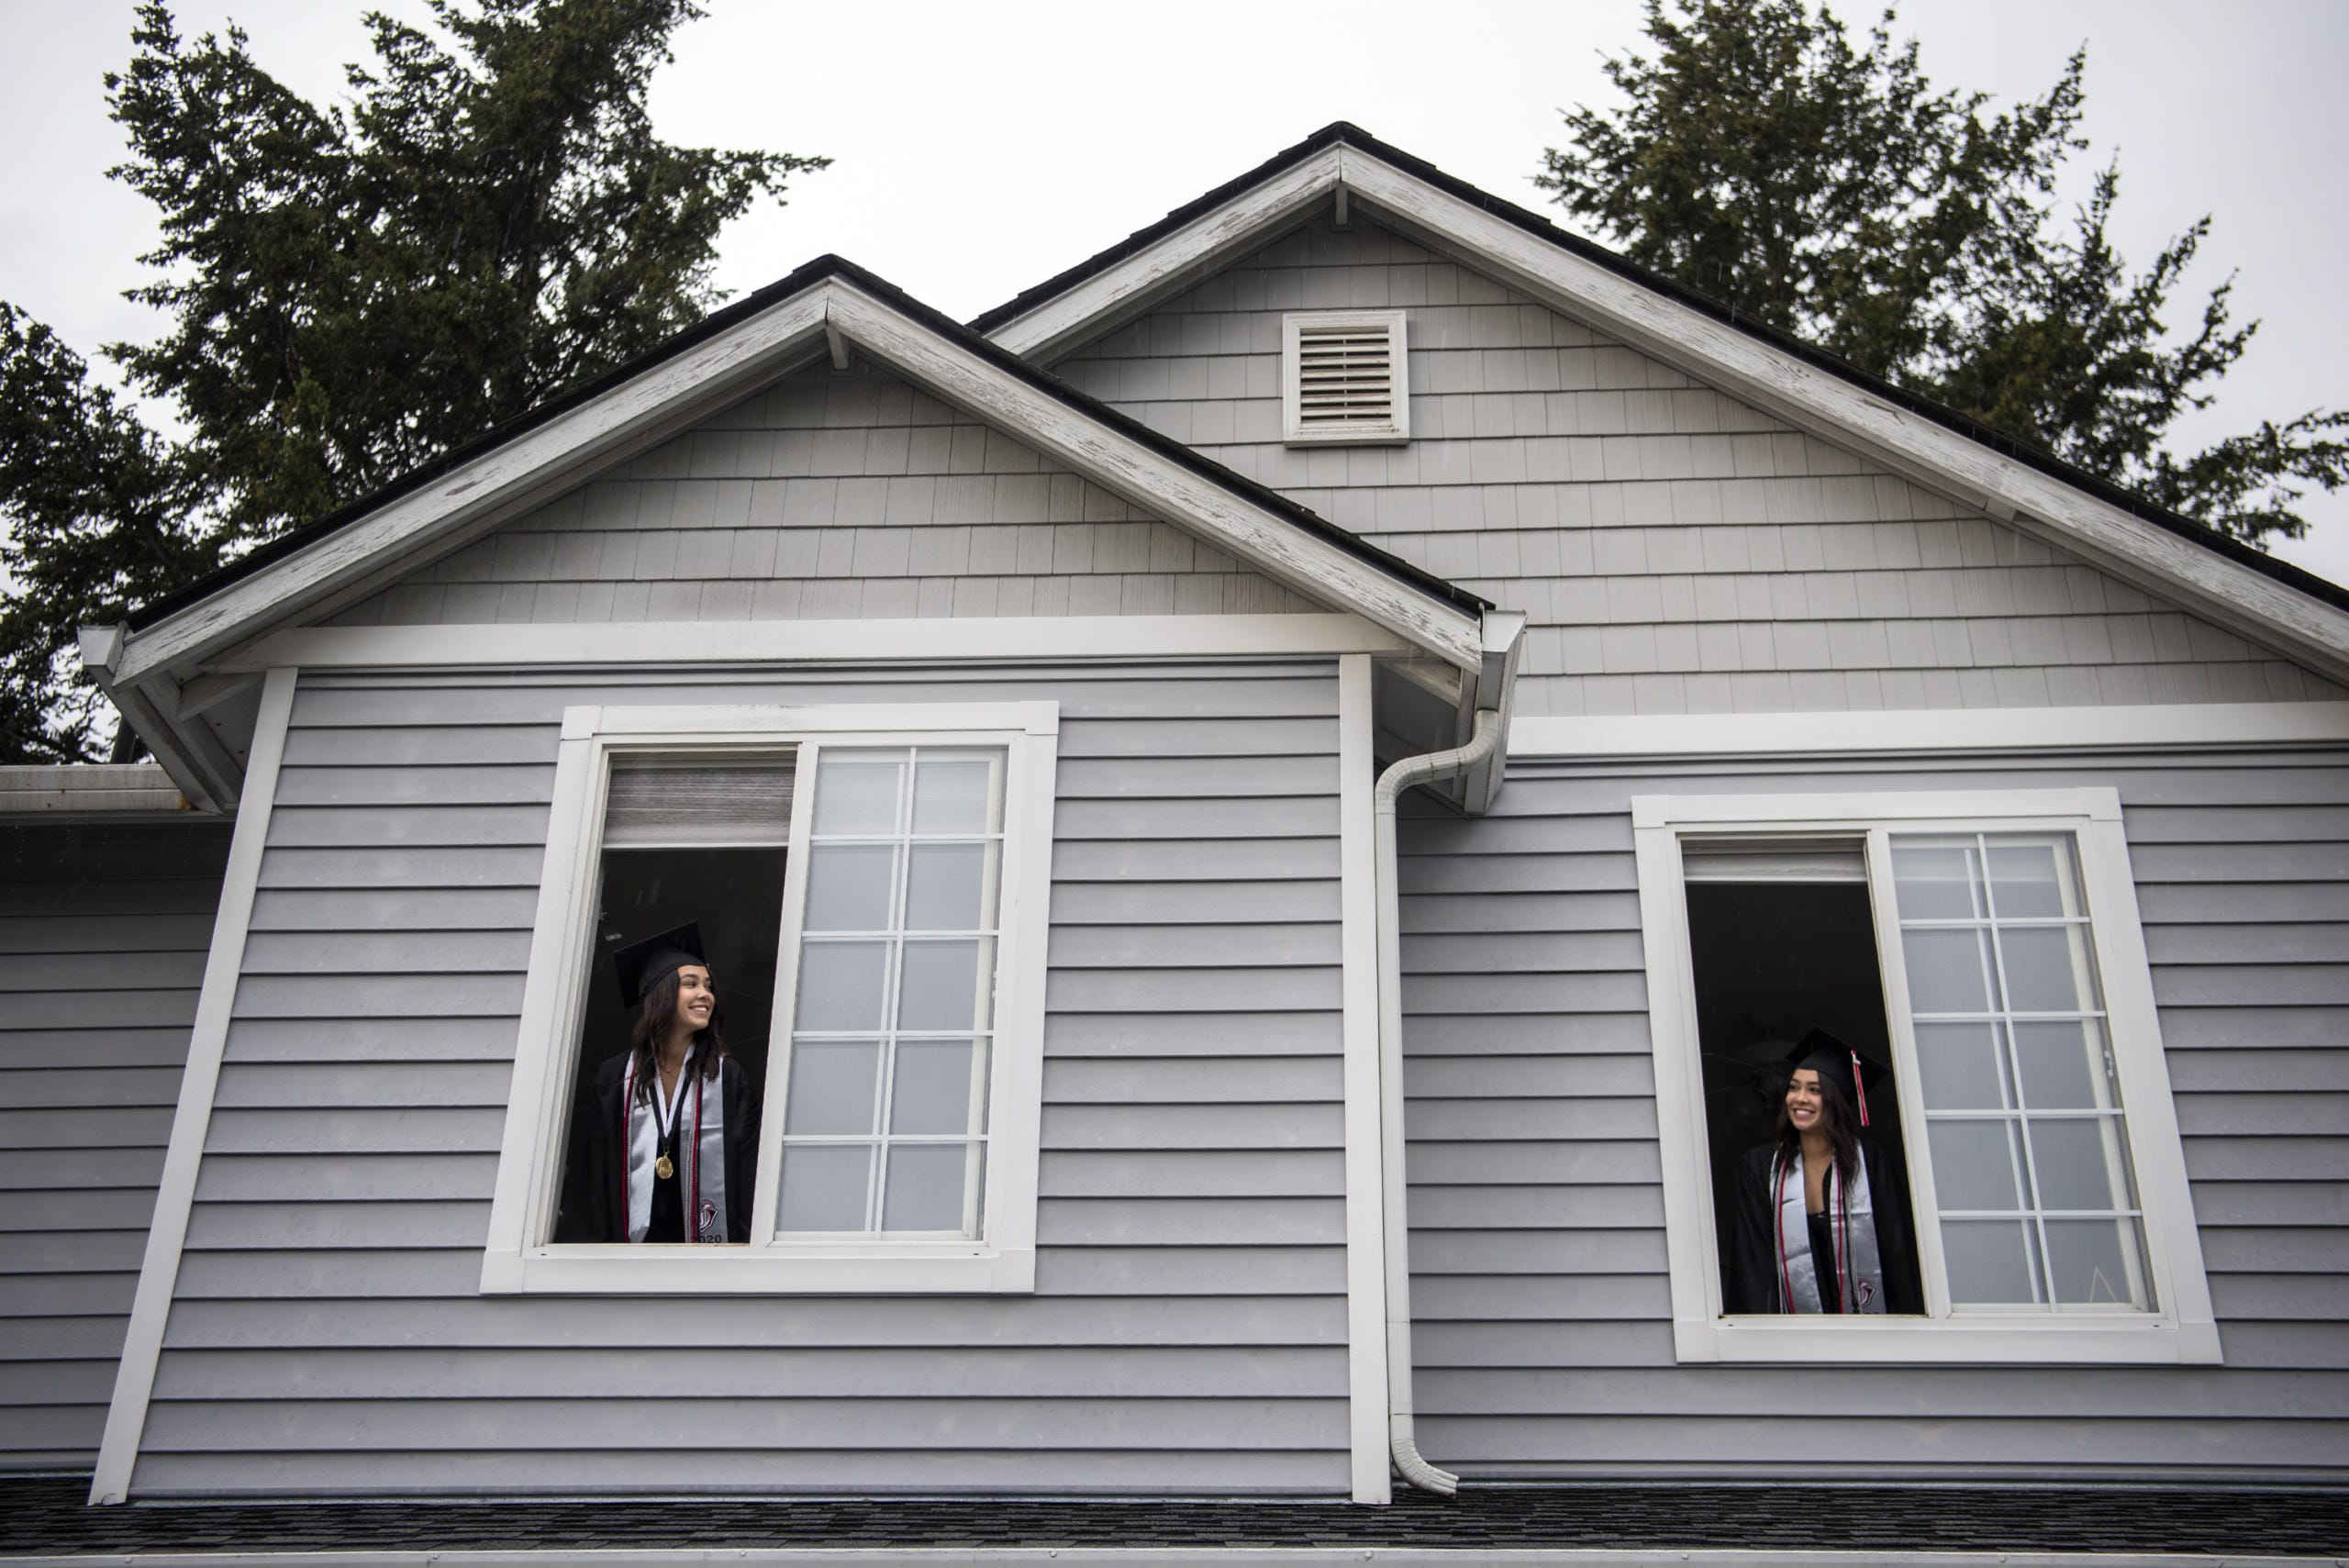 Union High School seniors Lauryn Lopez, left, and her twin sister Ashtyn look out the windows of their Vancouver home.  (Alisha Jucevic/The Columbian)